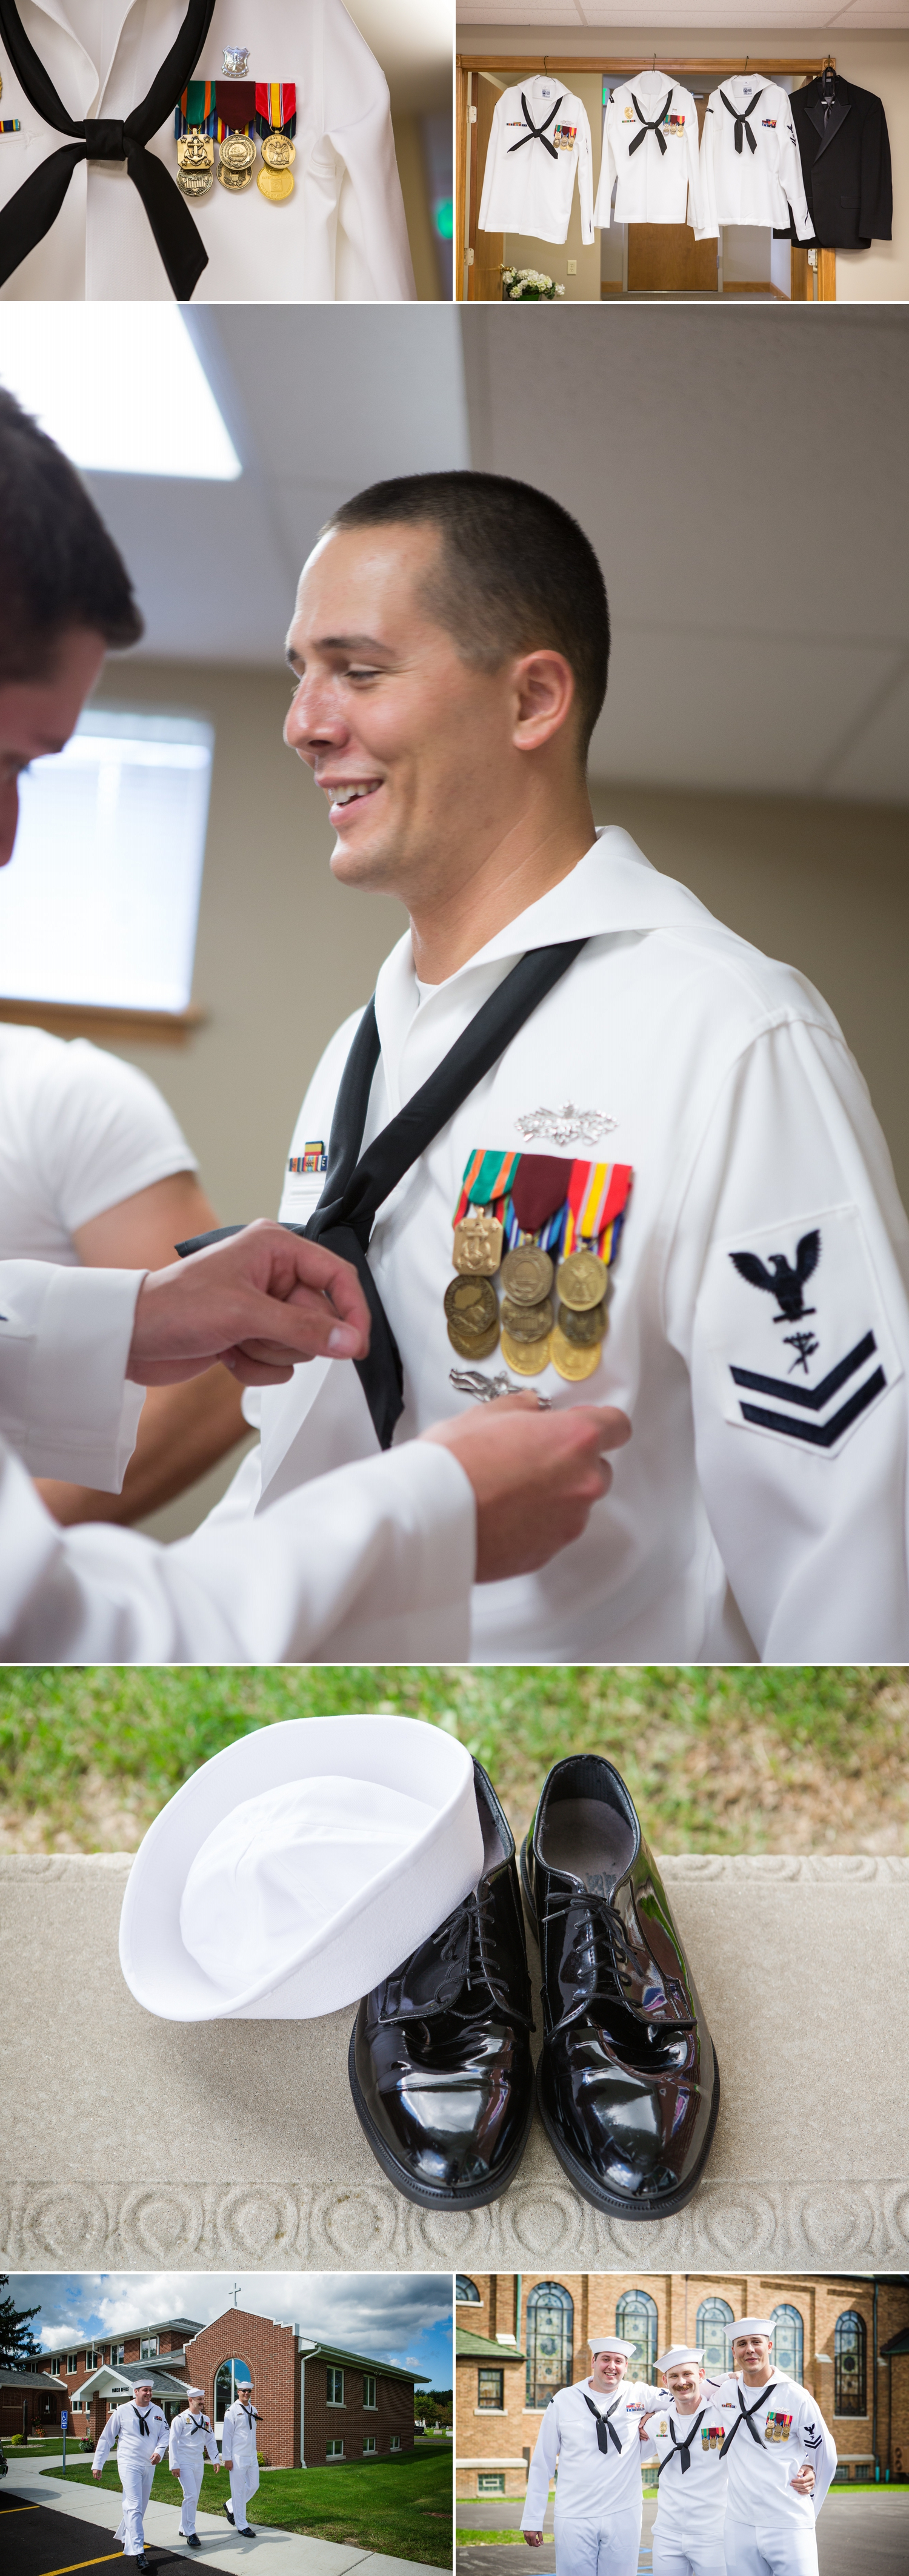 """The bride's father and ushers wore tuxes from Dunhill and the groomsmen and groom wore their Navy Uniform """"Dress Whites"""". They were meticulous about how their medals and pins were positioned and I loved hearing about what each one represented."""